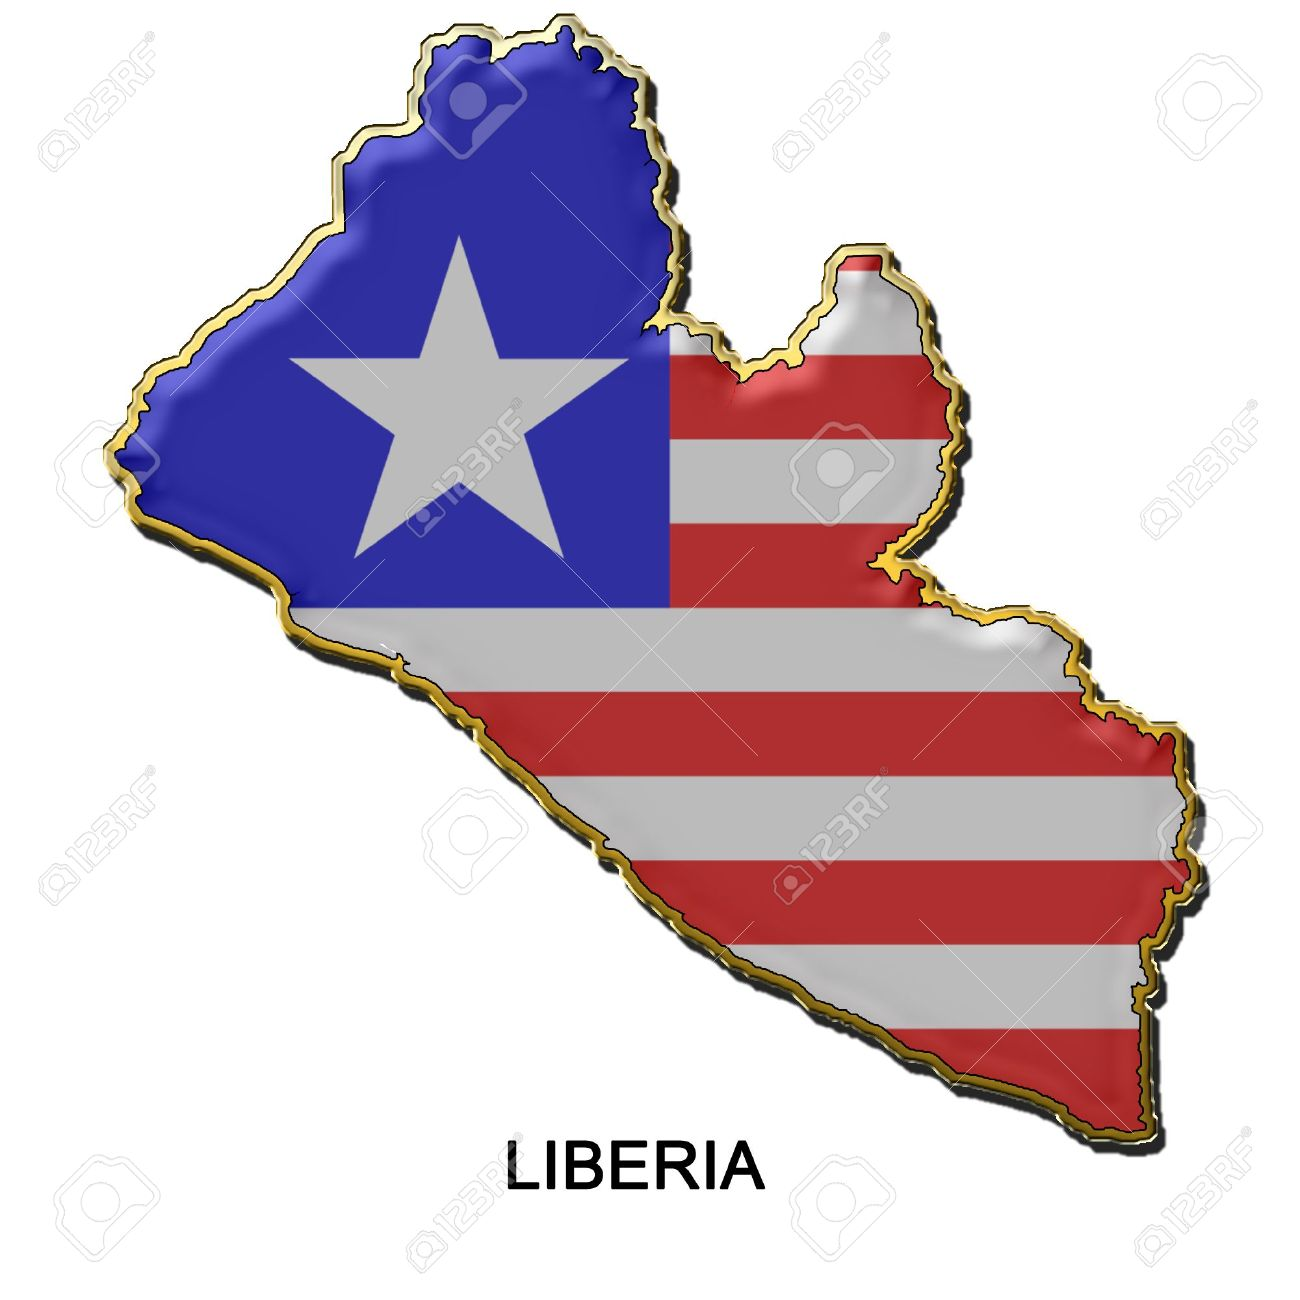 Map Shaped Flag Of Liberia In The Style Of A Metal Pin Badge Stock.